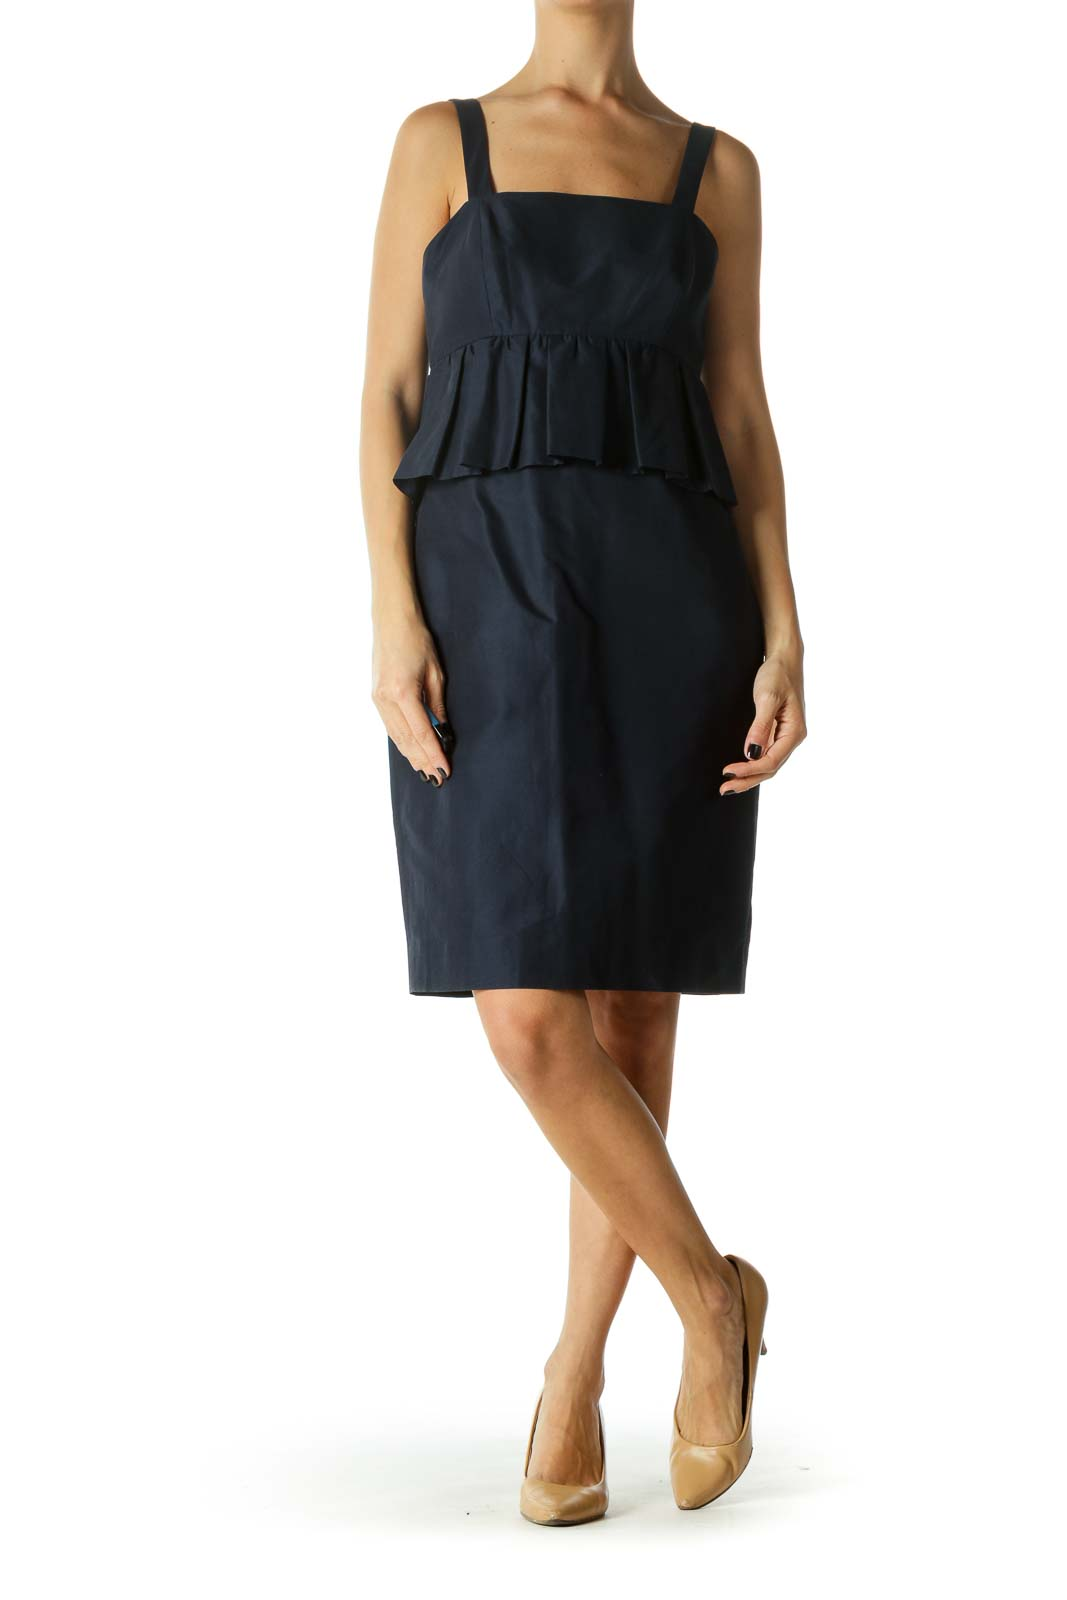 Blue Spaghetti Strap Ruffled Work Dress